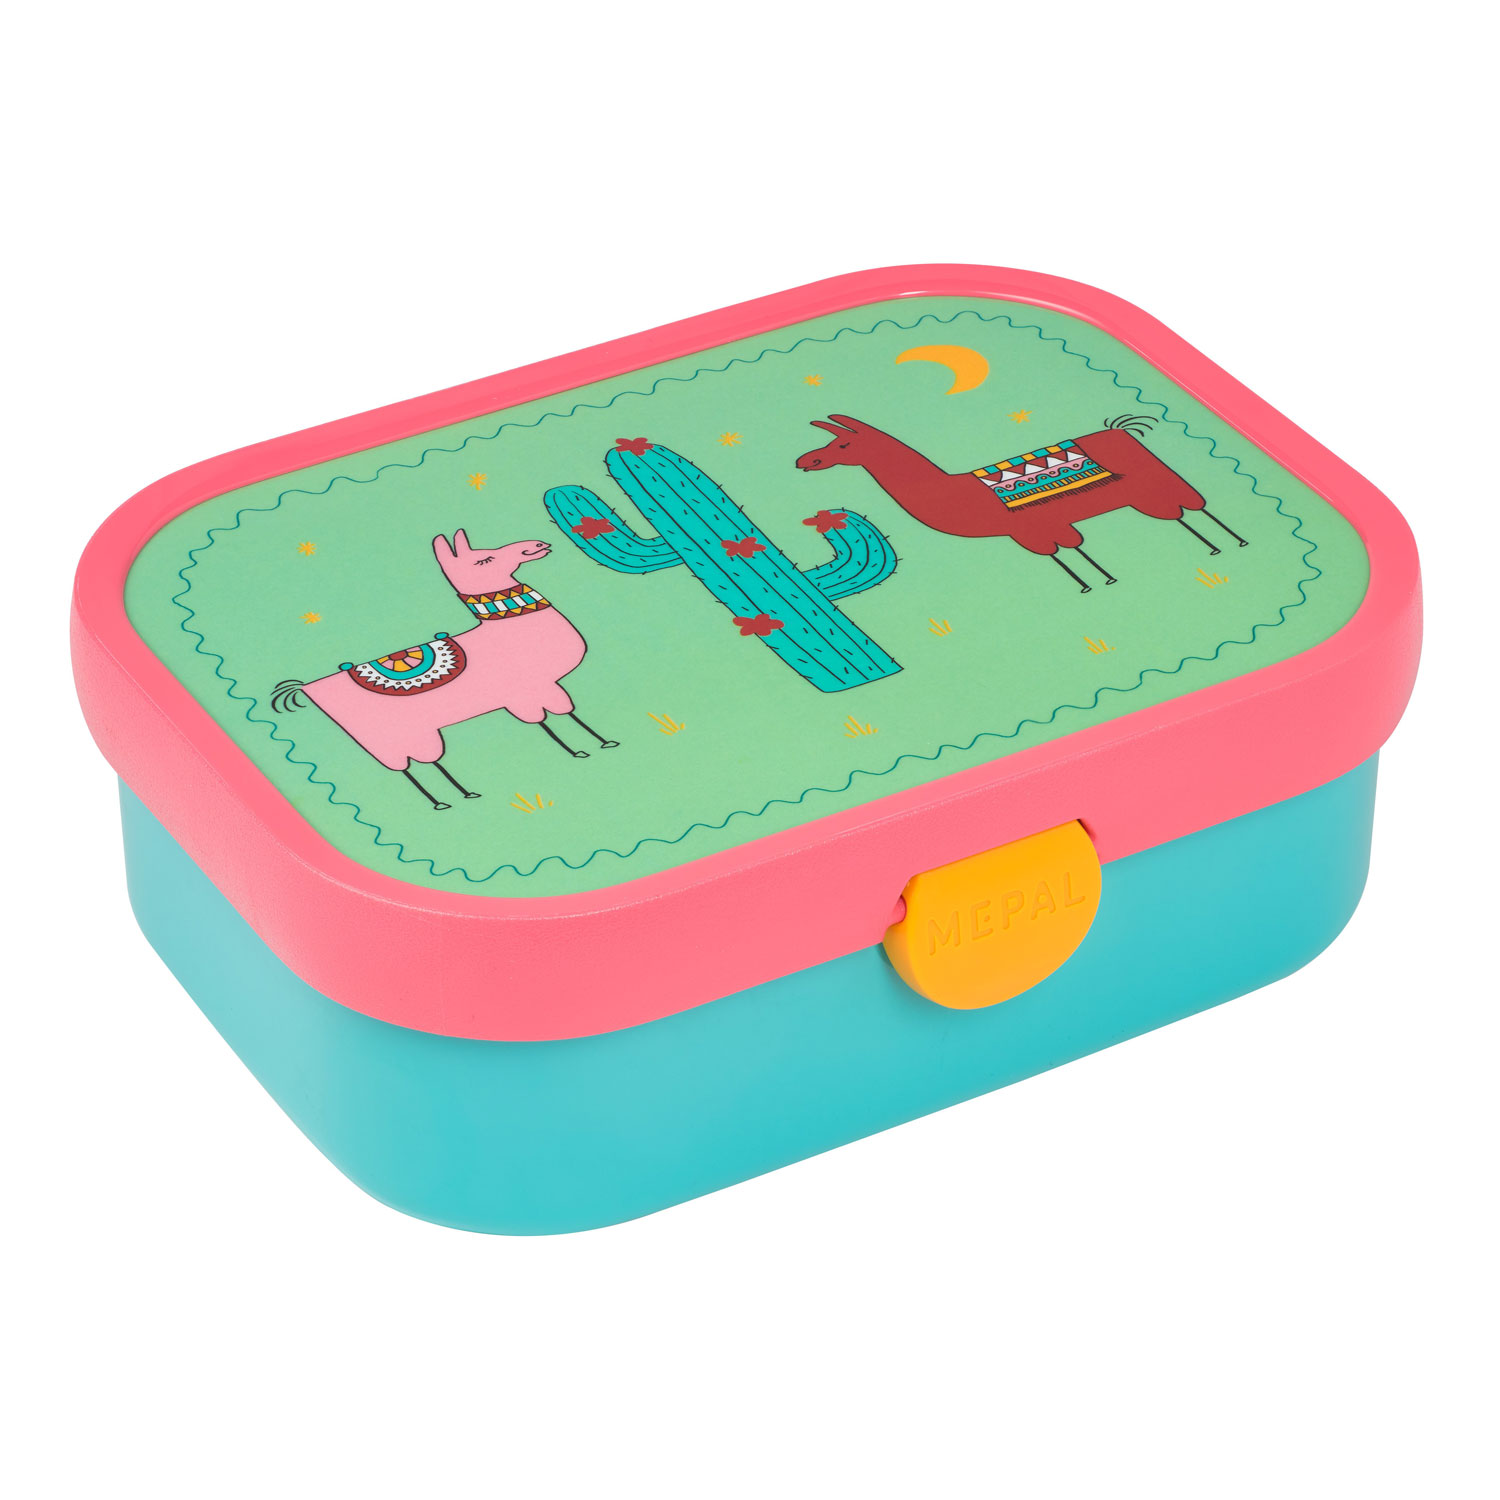 Mepal Campus Lunchbox - Lama